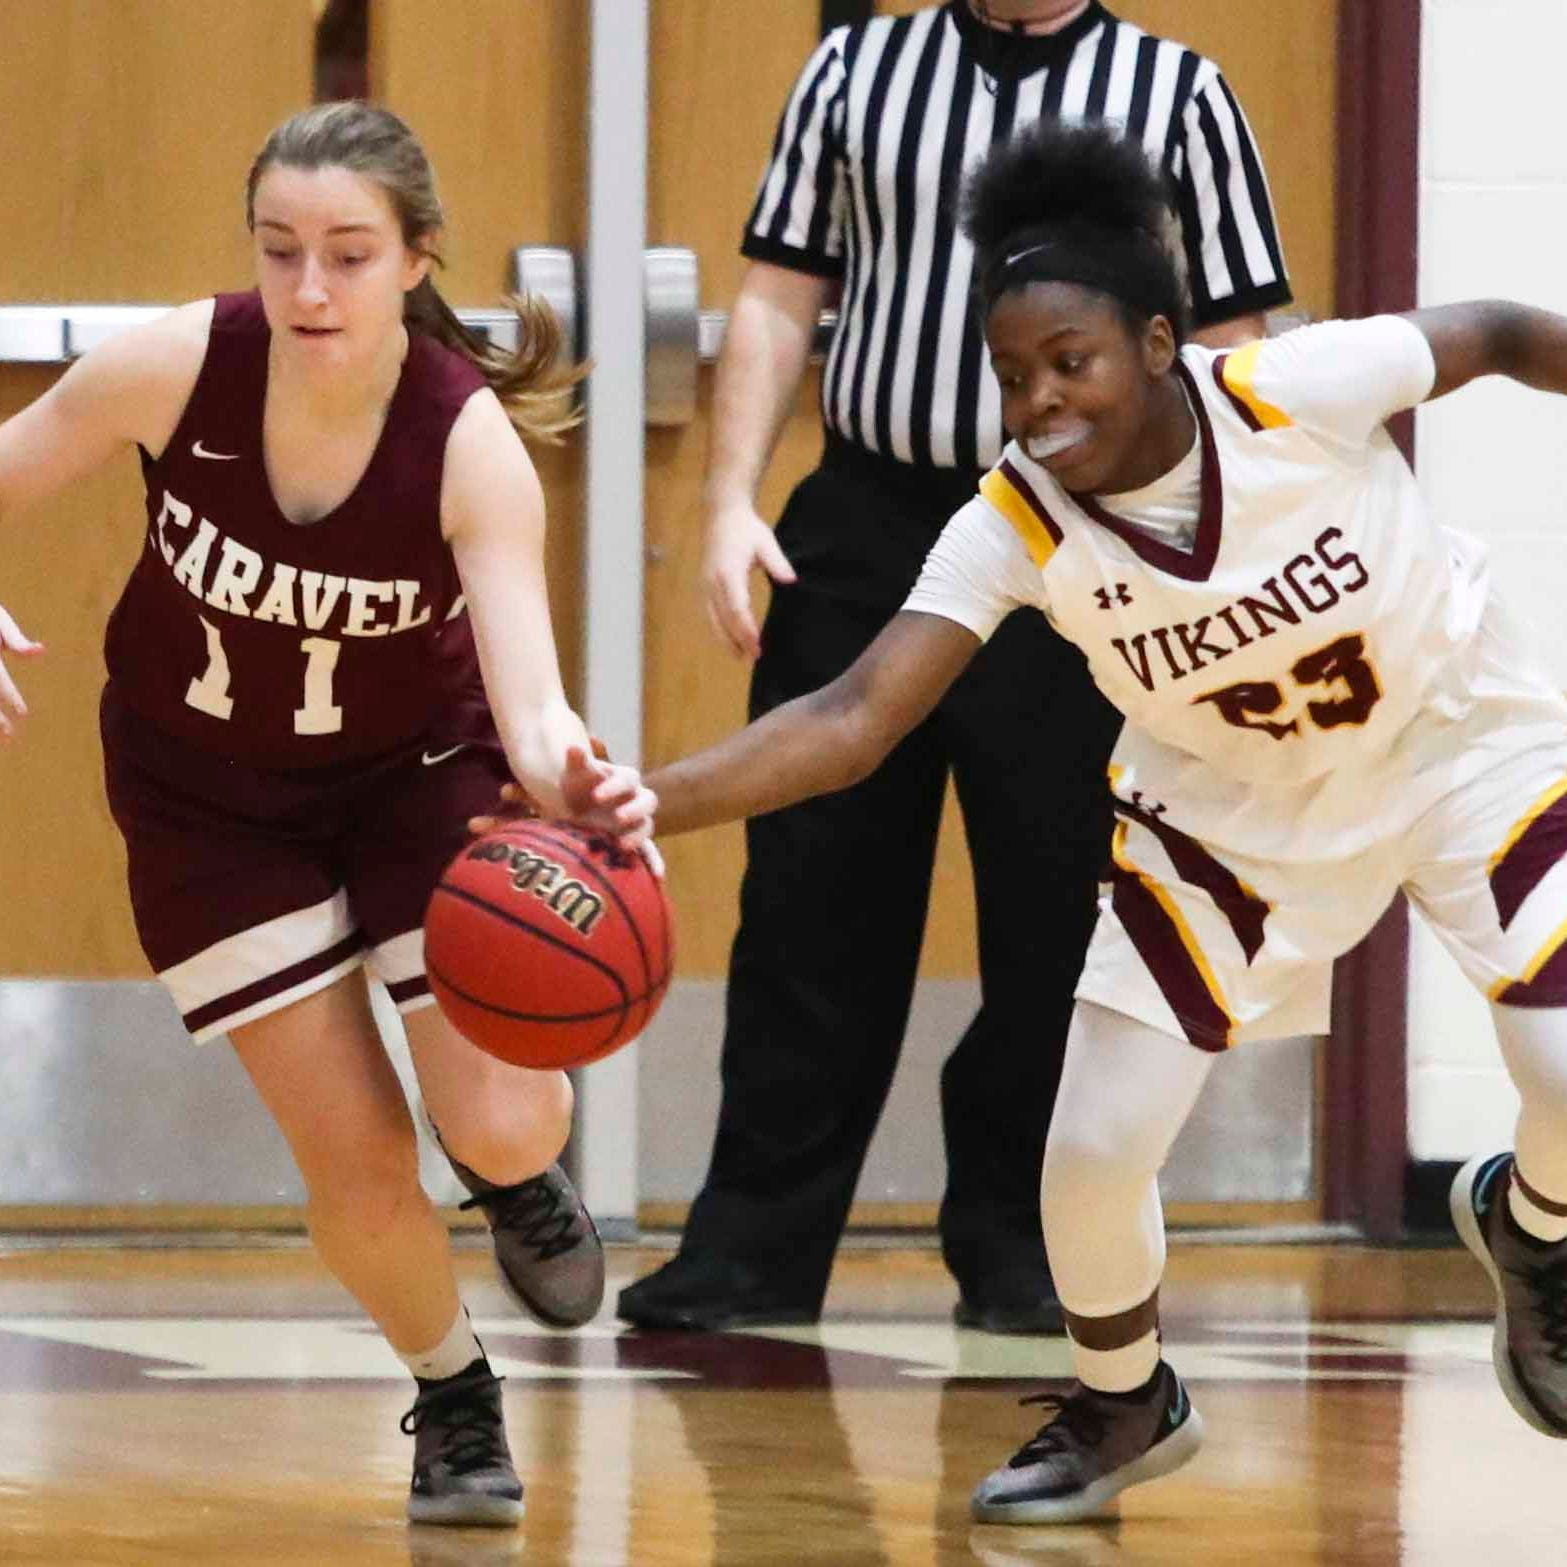 St. Elizabeth nabs No. 1 seed in DIAA Girls Basketball Tournament